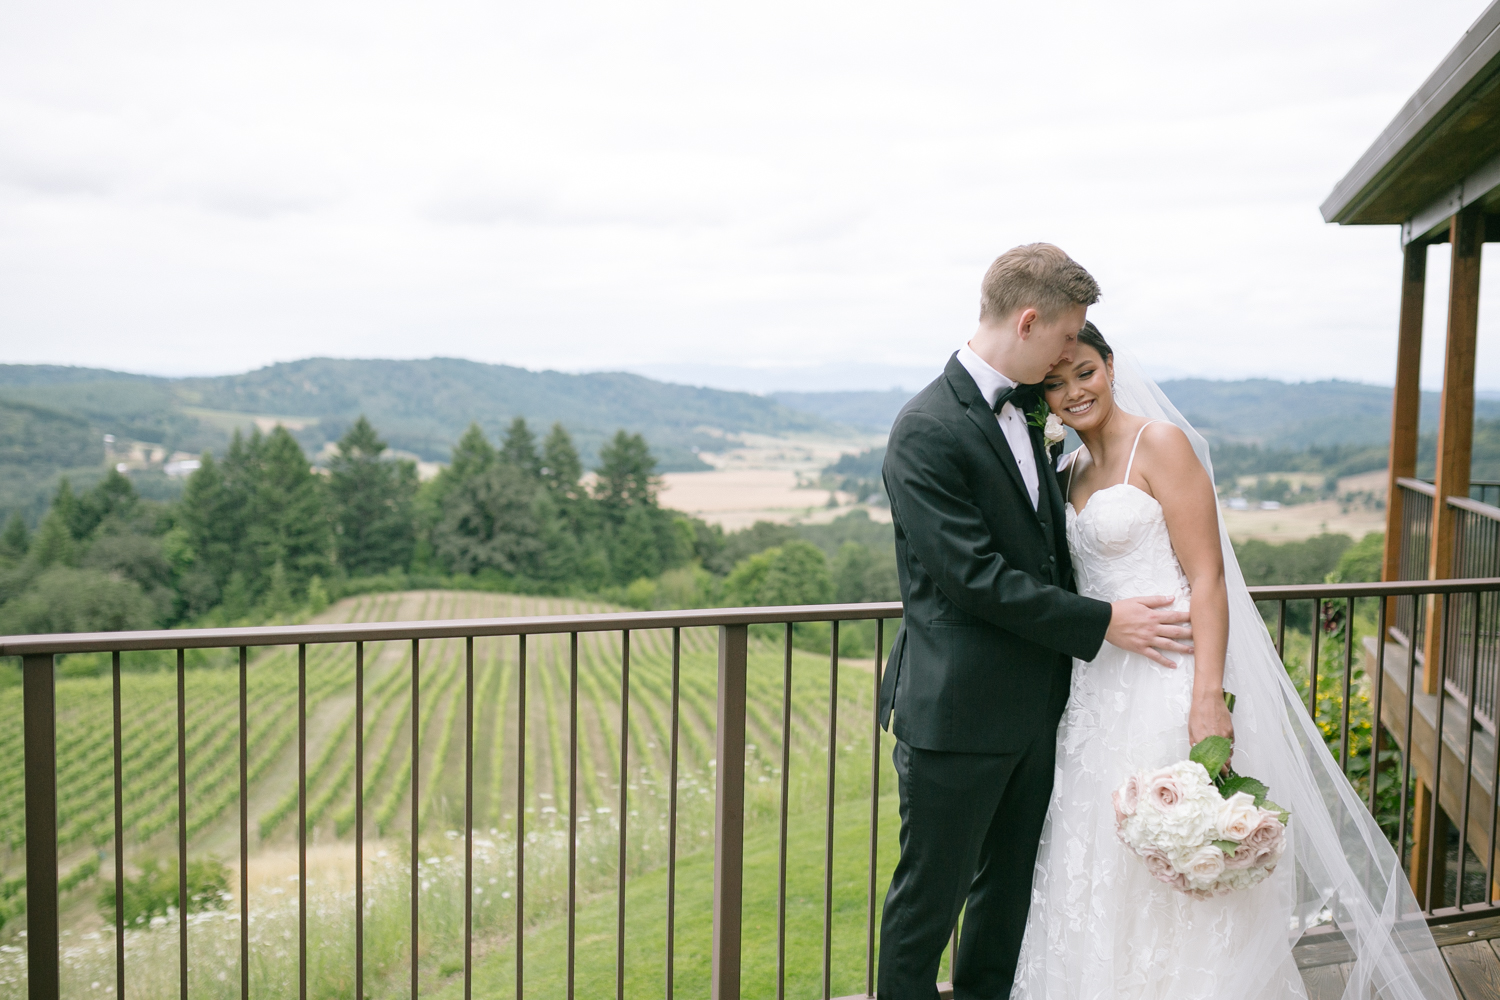 Youngberg Hill Vineyard Wedding in Wine Country Oregon - Corrie Mick Photography-180.jpg